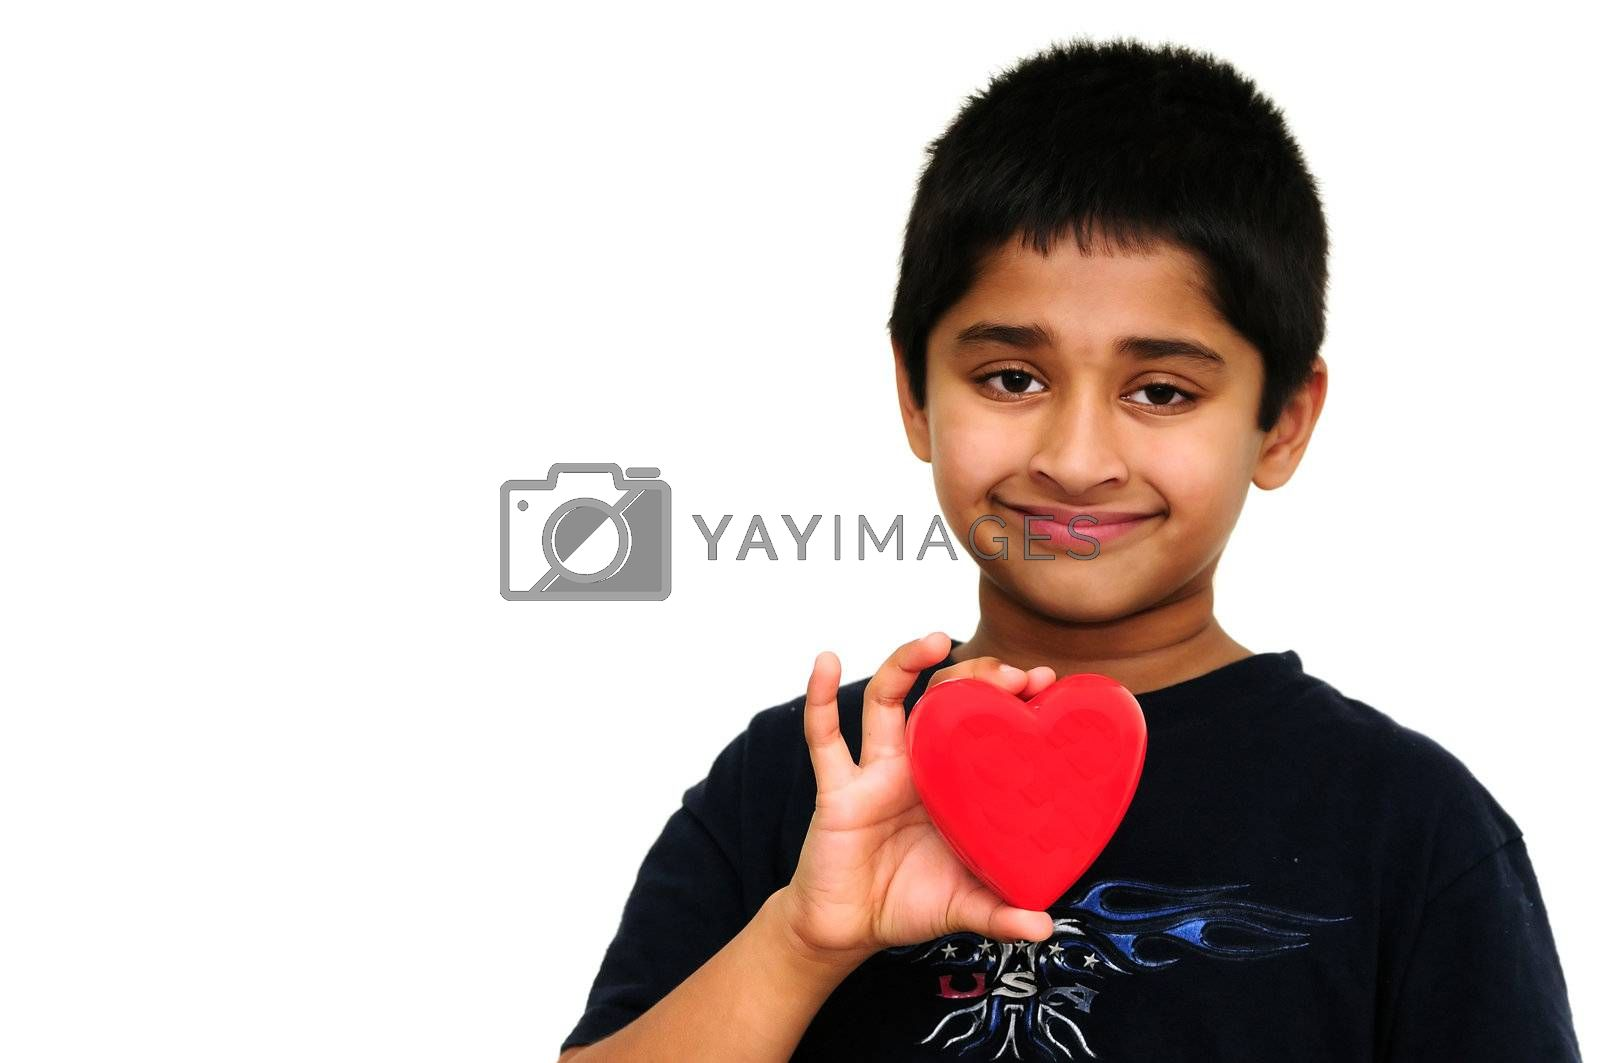 Handsome young Indian boy holding a red heart